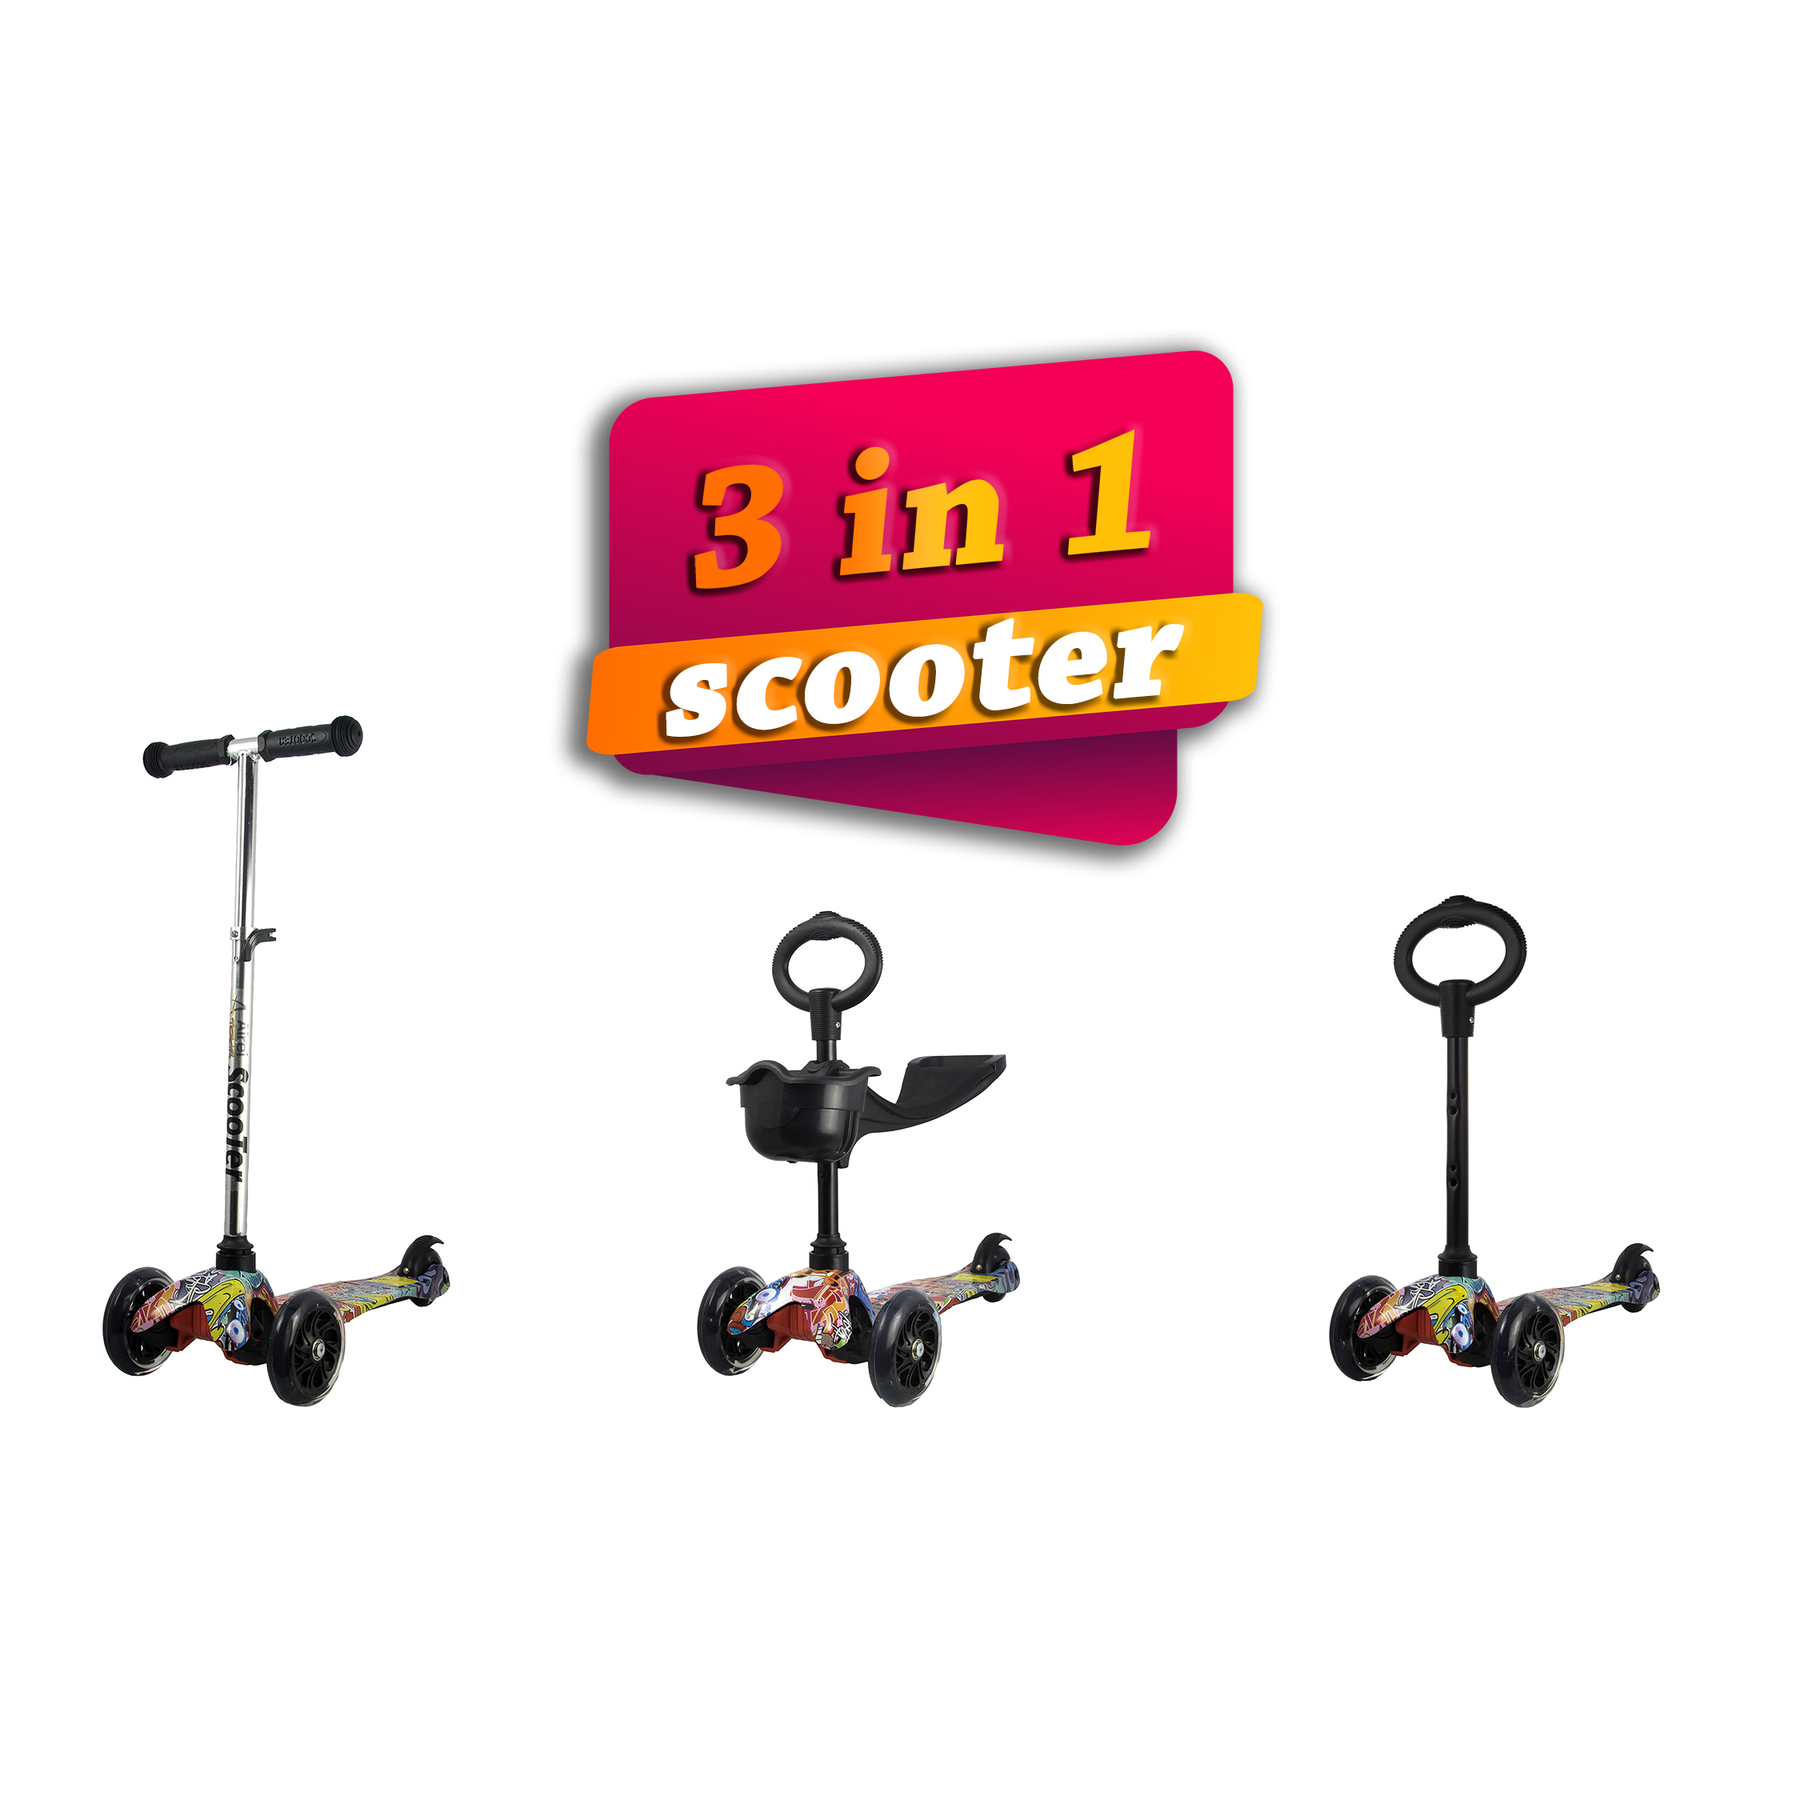 Kenrod 3-Wheel Scooter For Children Between 3 And 10 Scooter